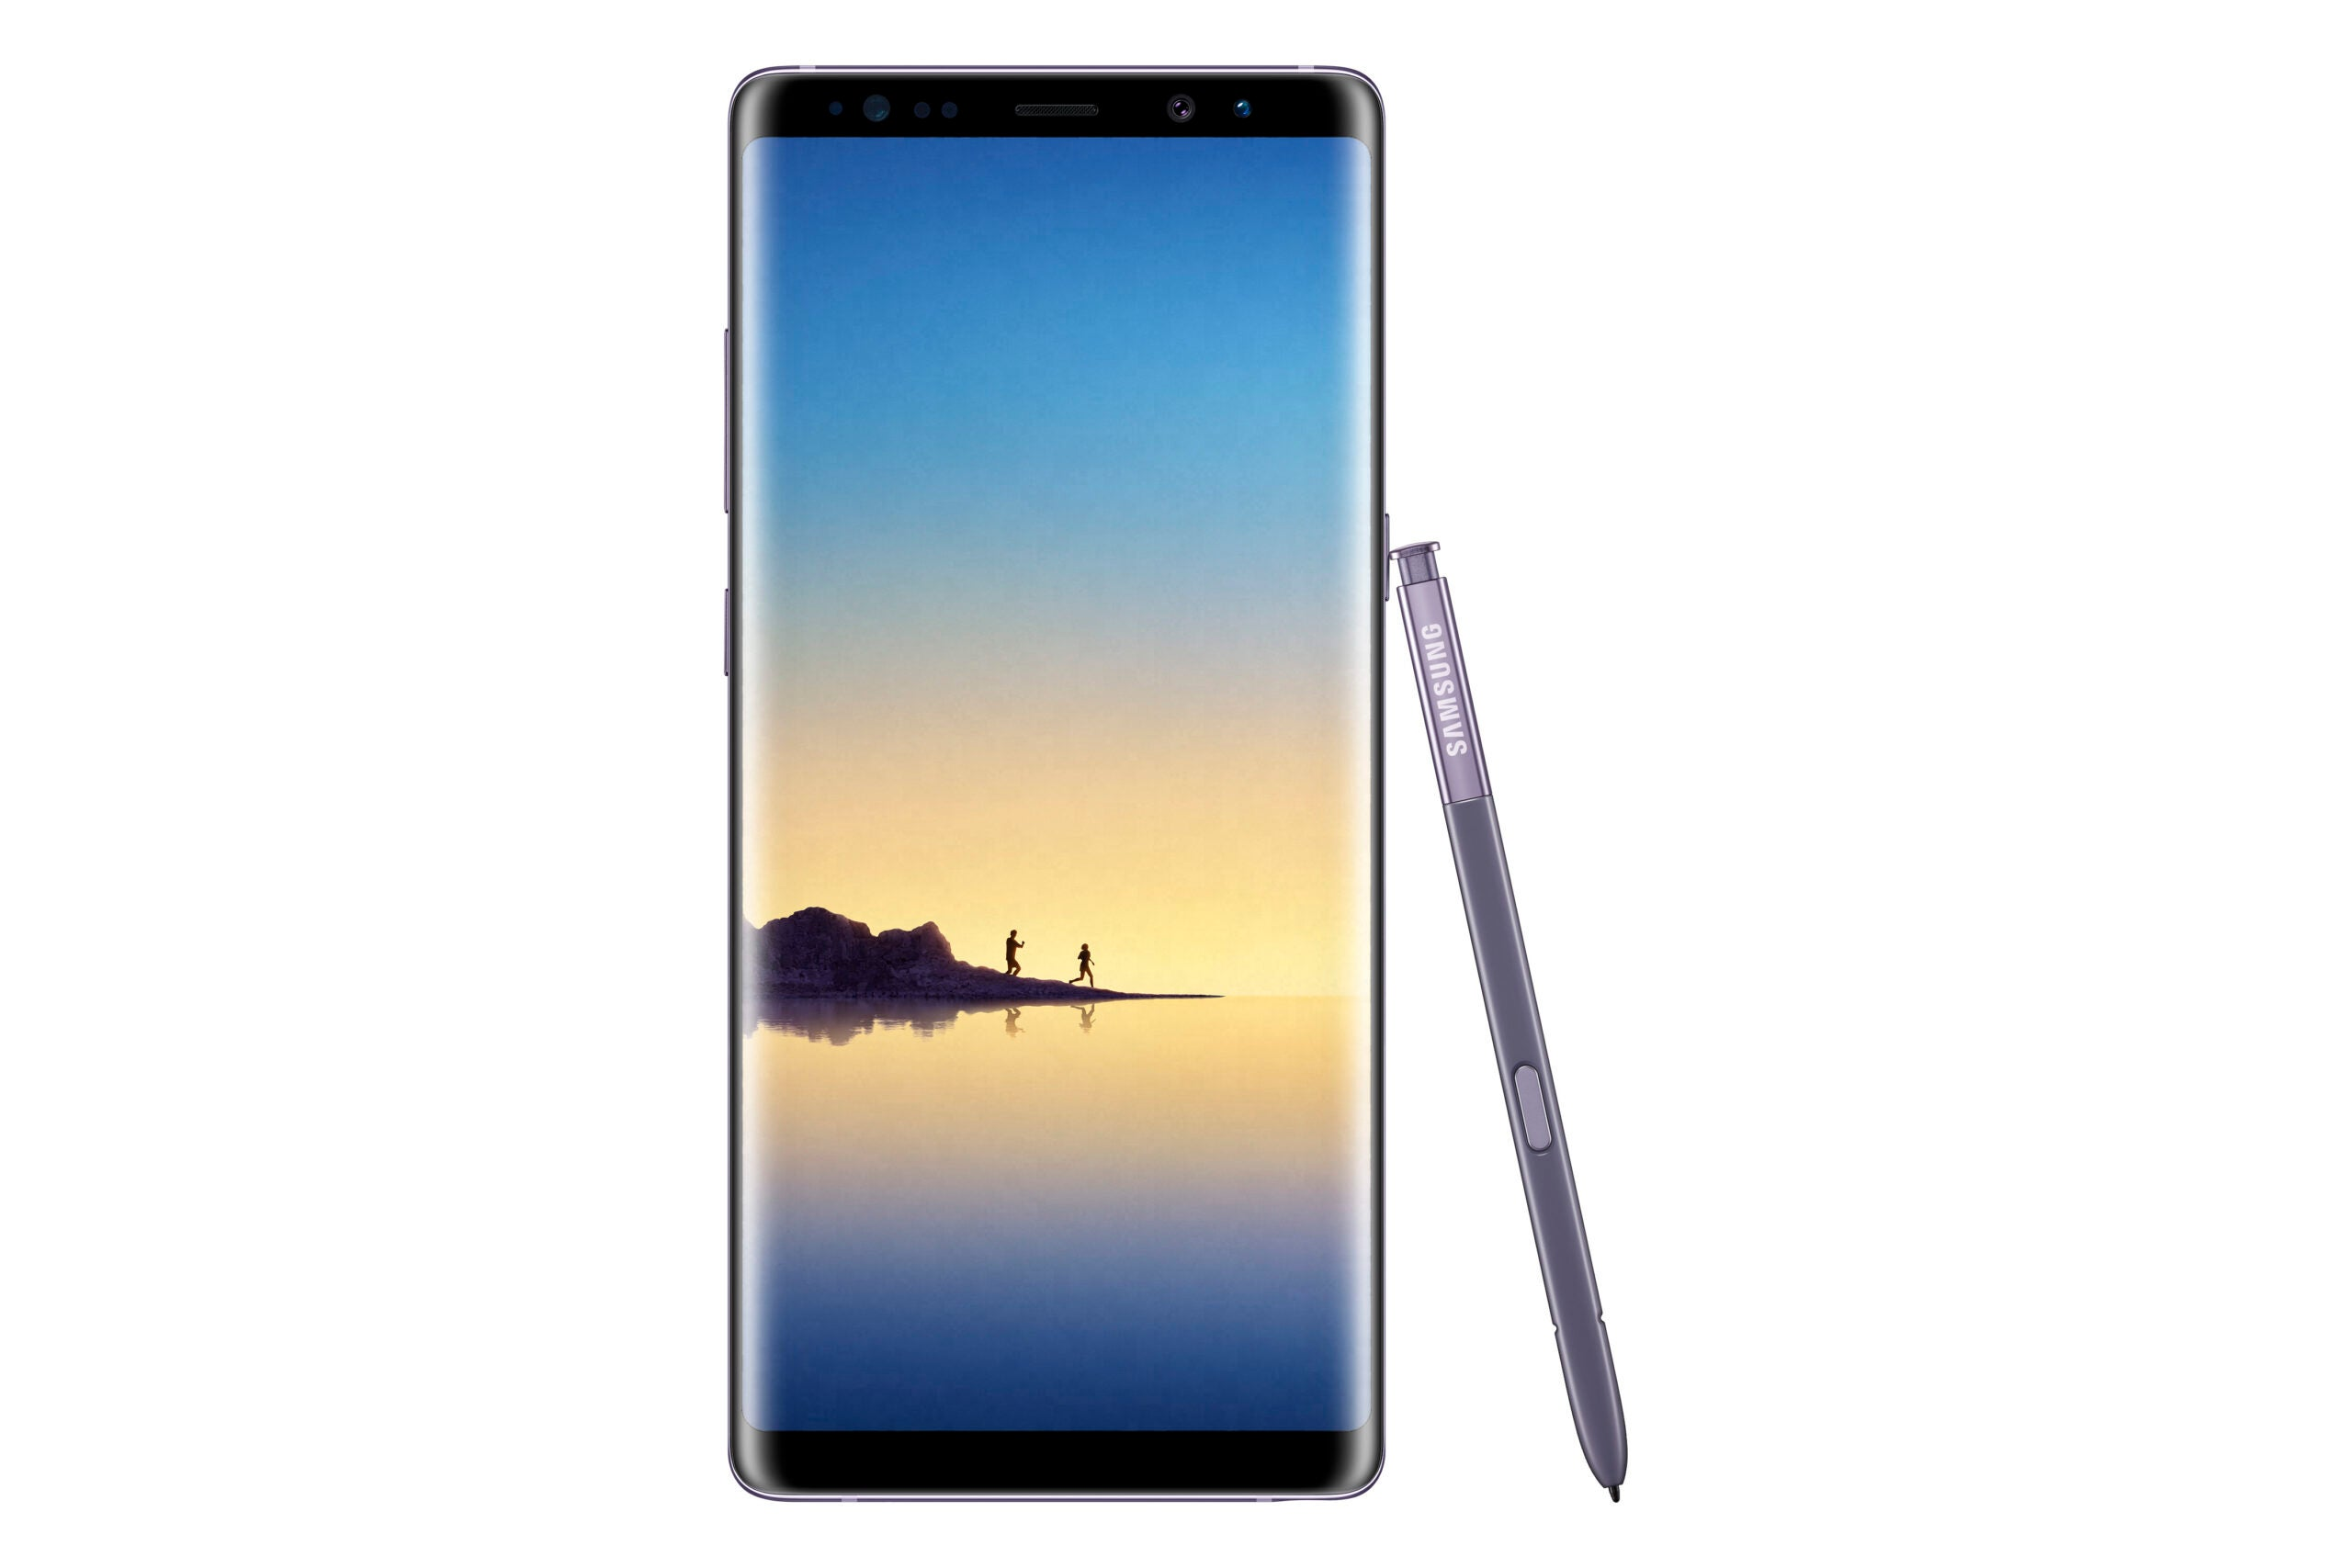 Here's what you need to know about the Samsung Note8 smartphone